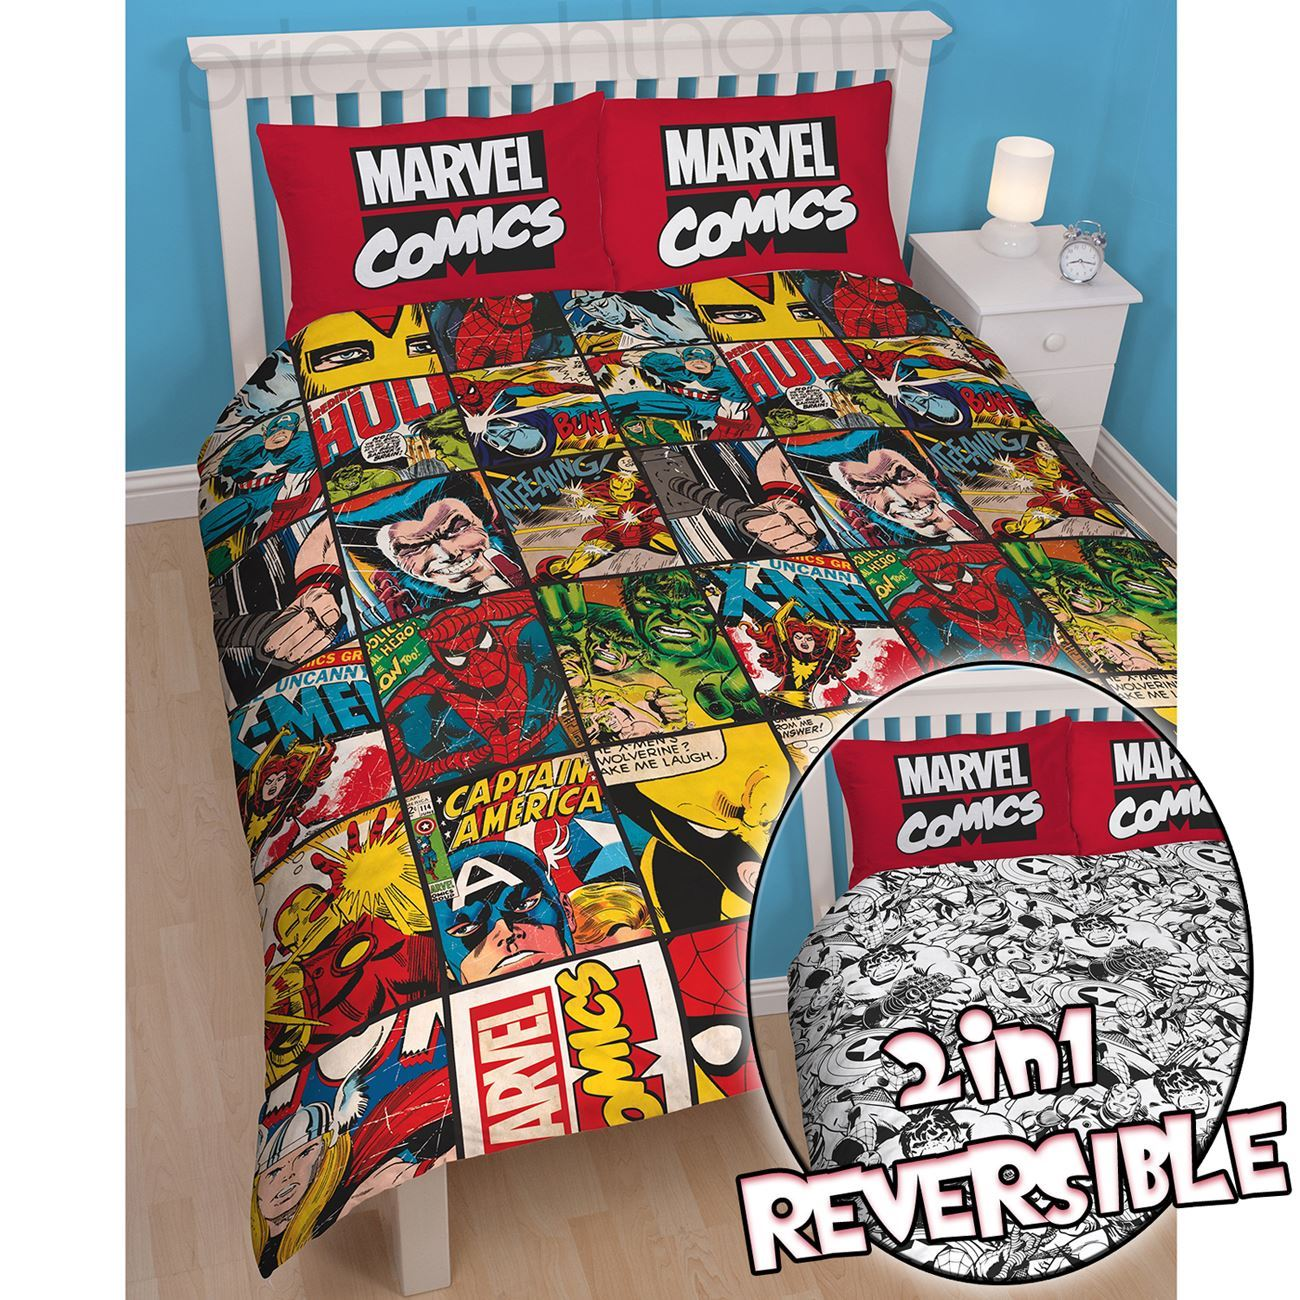 Good OFFICIAL AVENGERS MARVEL COMICS BEDDING BEDROOM ACCESSORIES DUVETS